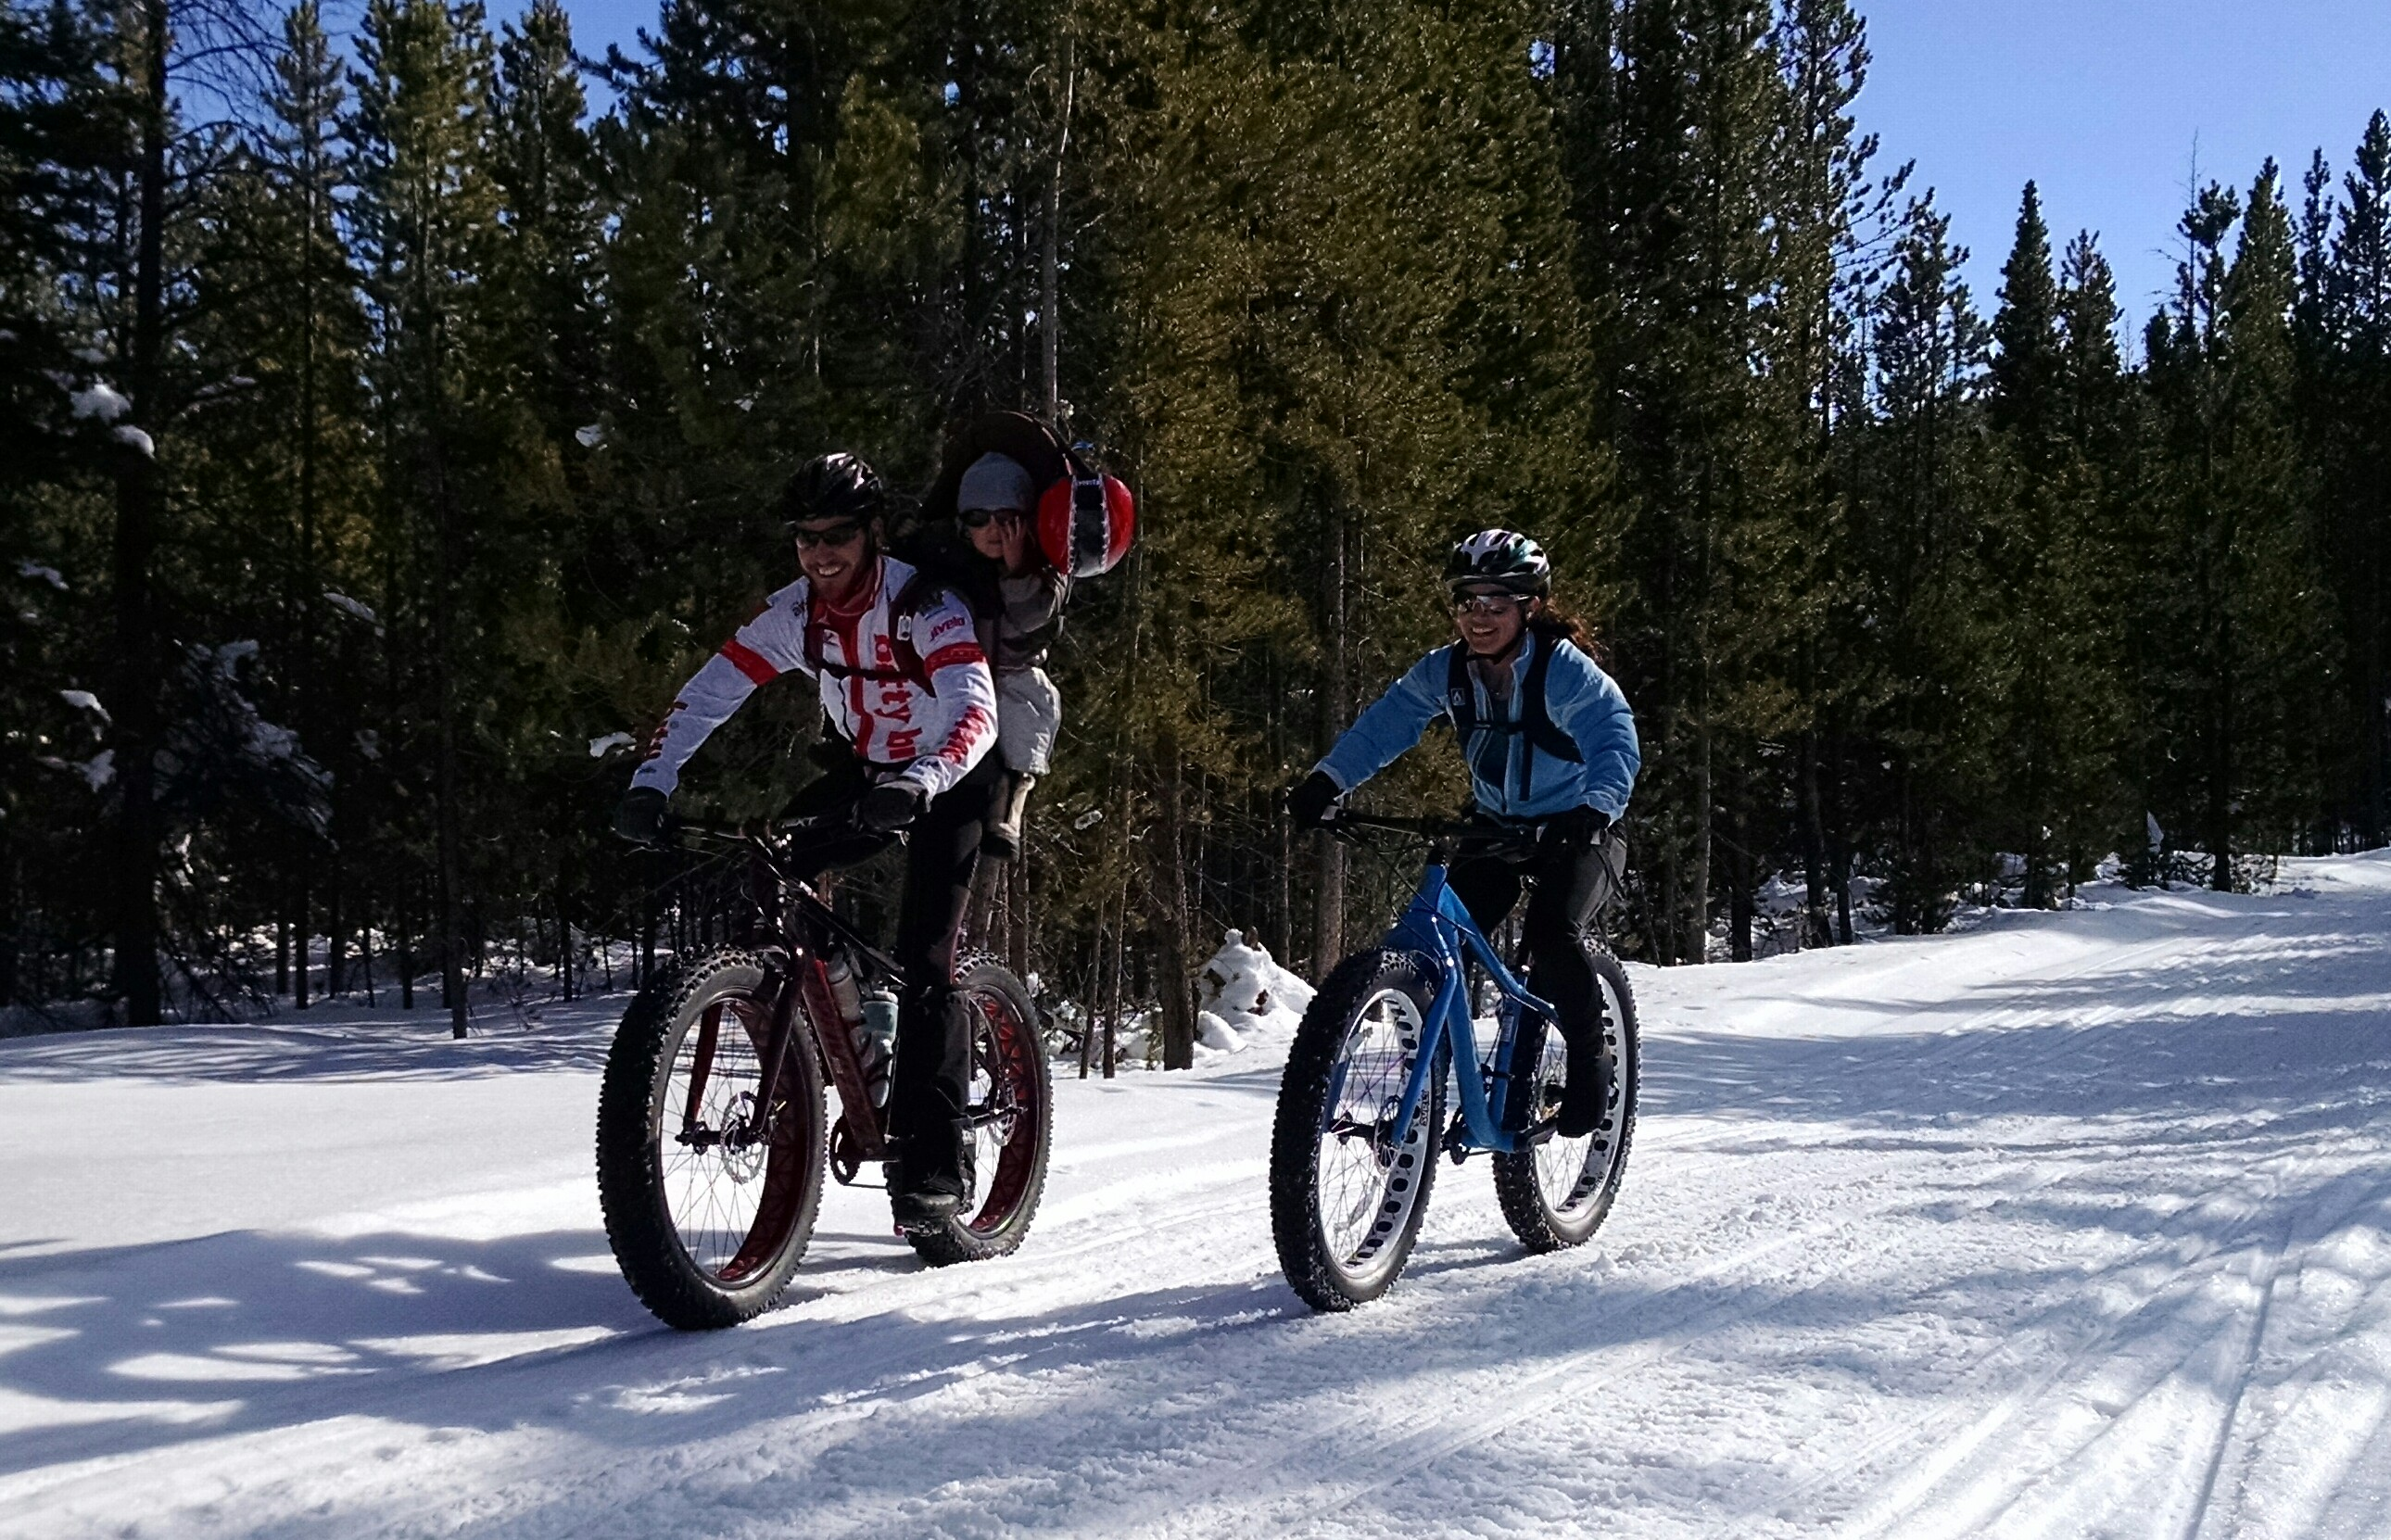 fat biking, mountain biking, bike rental, winter park, mountain bike capital usa, cannondale, salsa